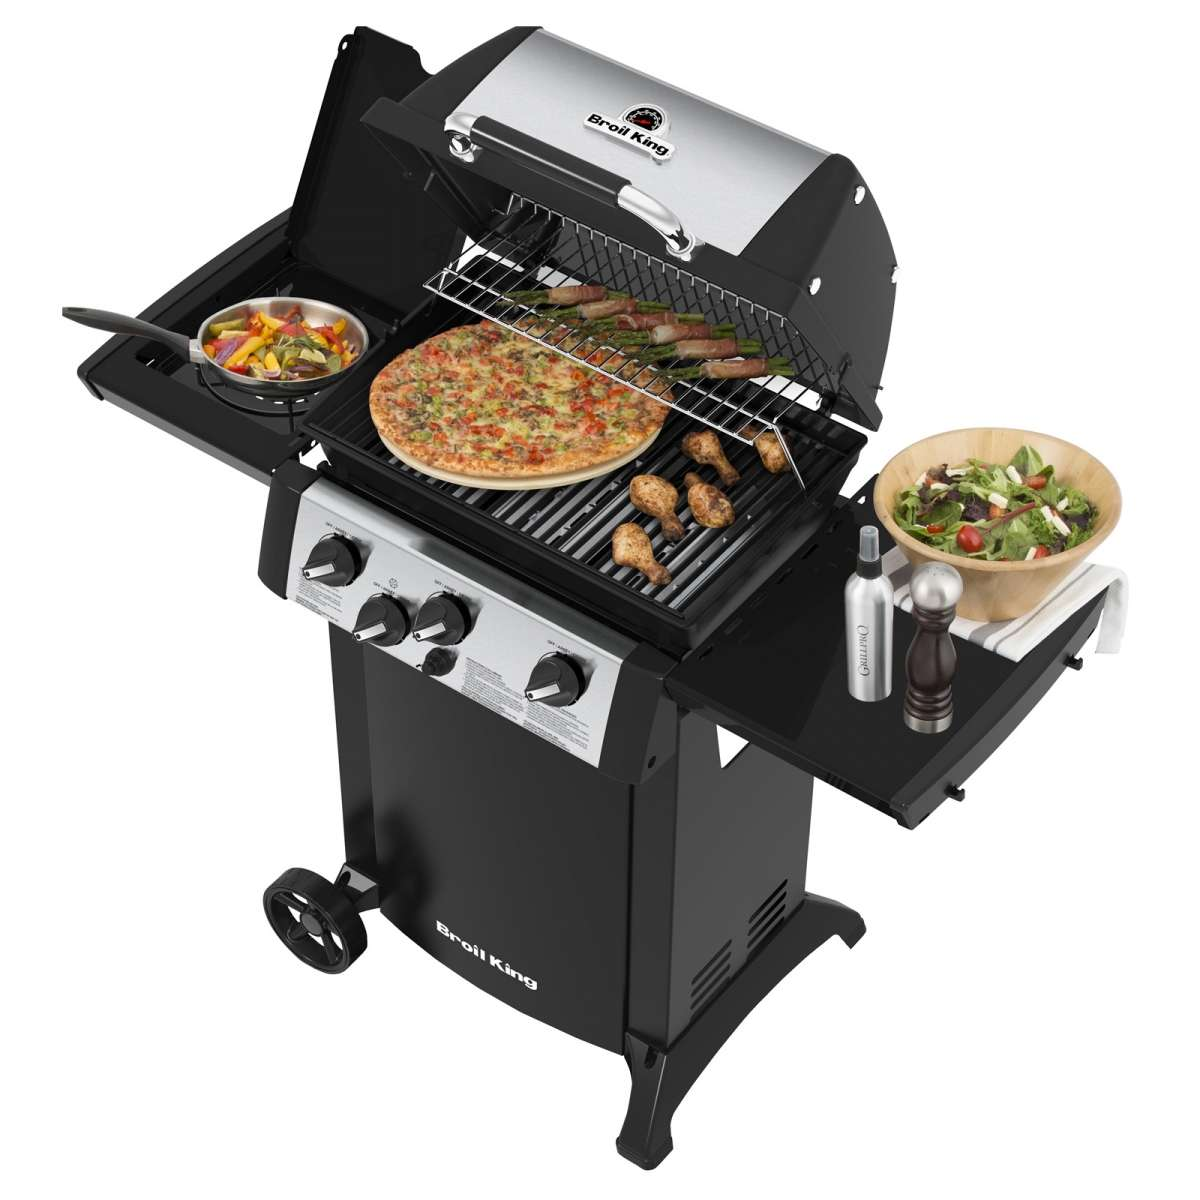 gem 340 broil king barbecue a gas 1 1